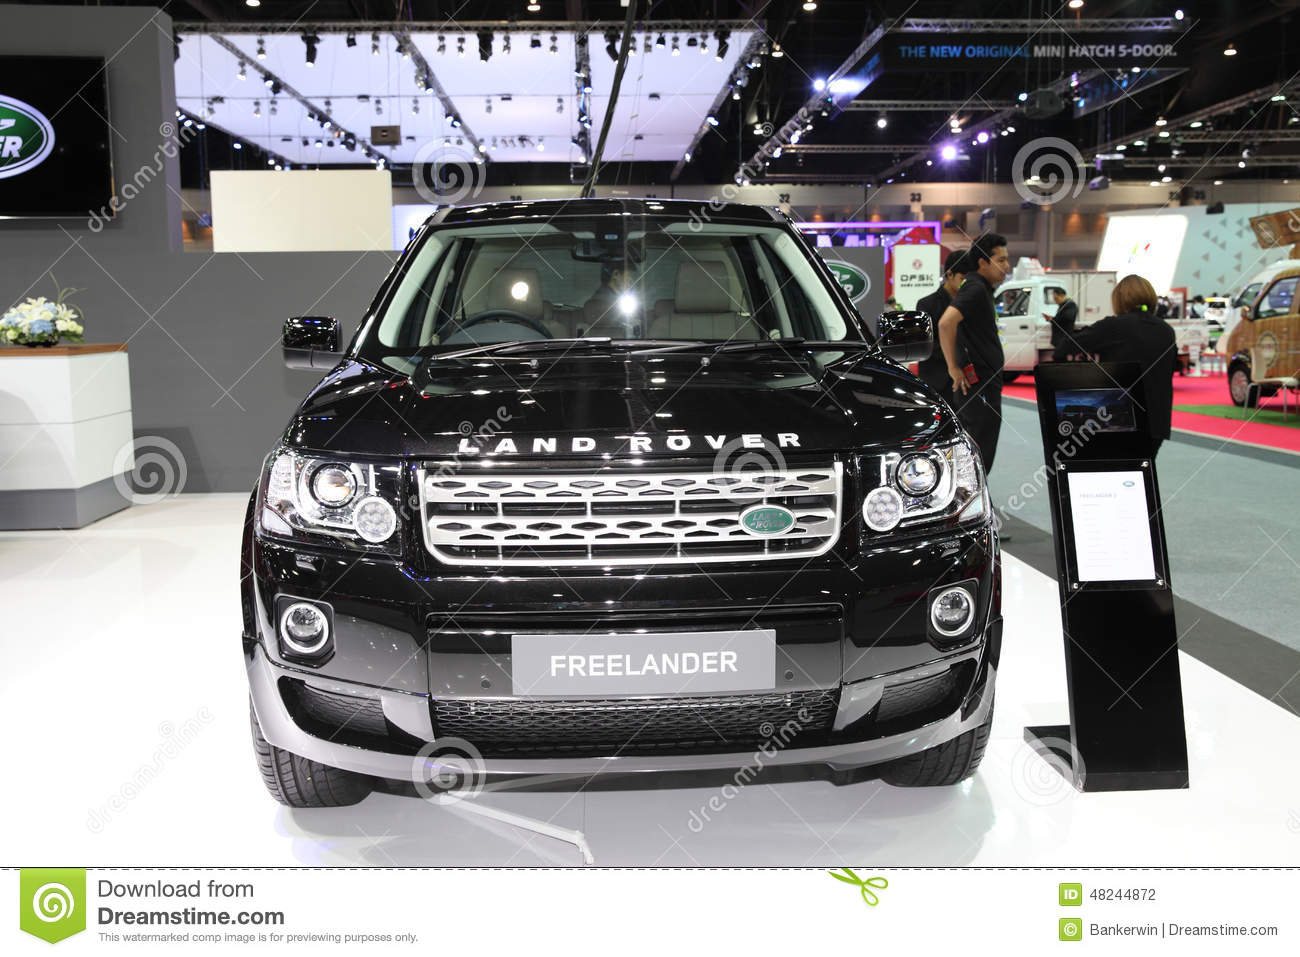 bangkok - november 28: land rover freelander car on display at t